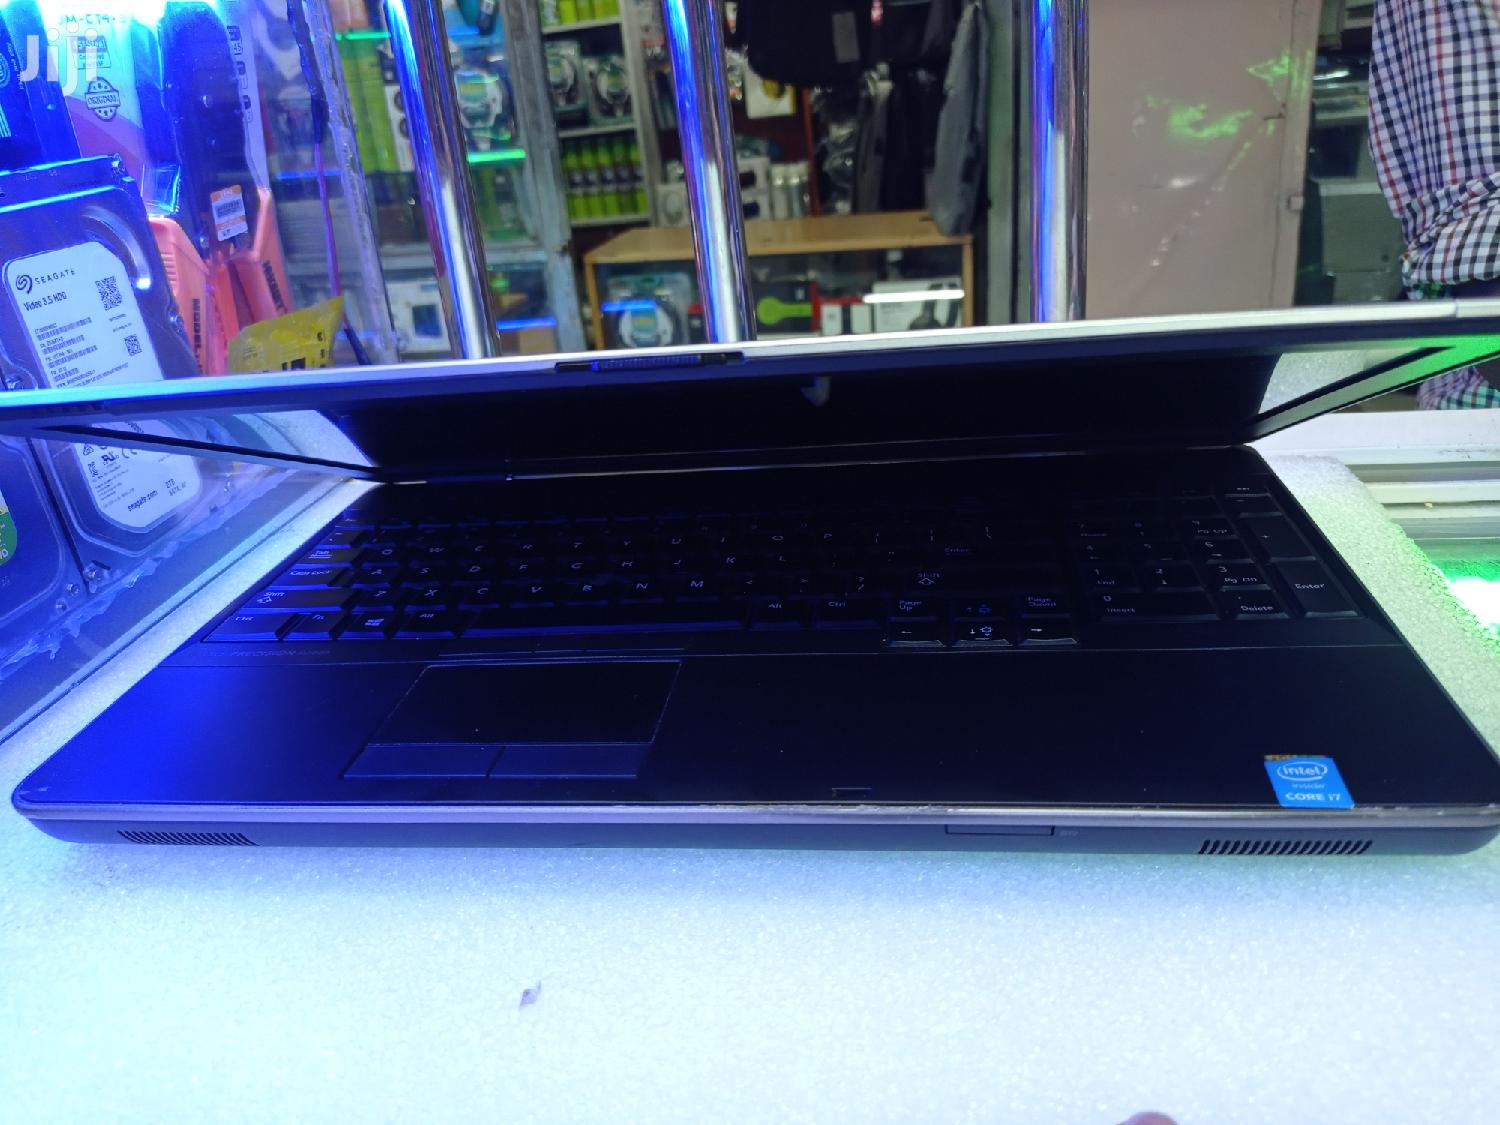 Laptop Dell Precision M2800 8GB Intel Core I7 HDD 500GB | Laptops & Computers for sale in Nairobi Central, Nairobi, Kenya